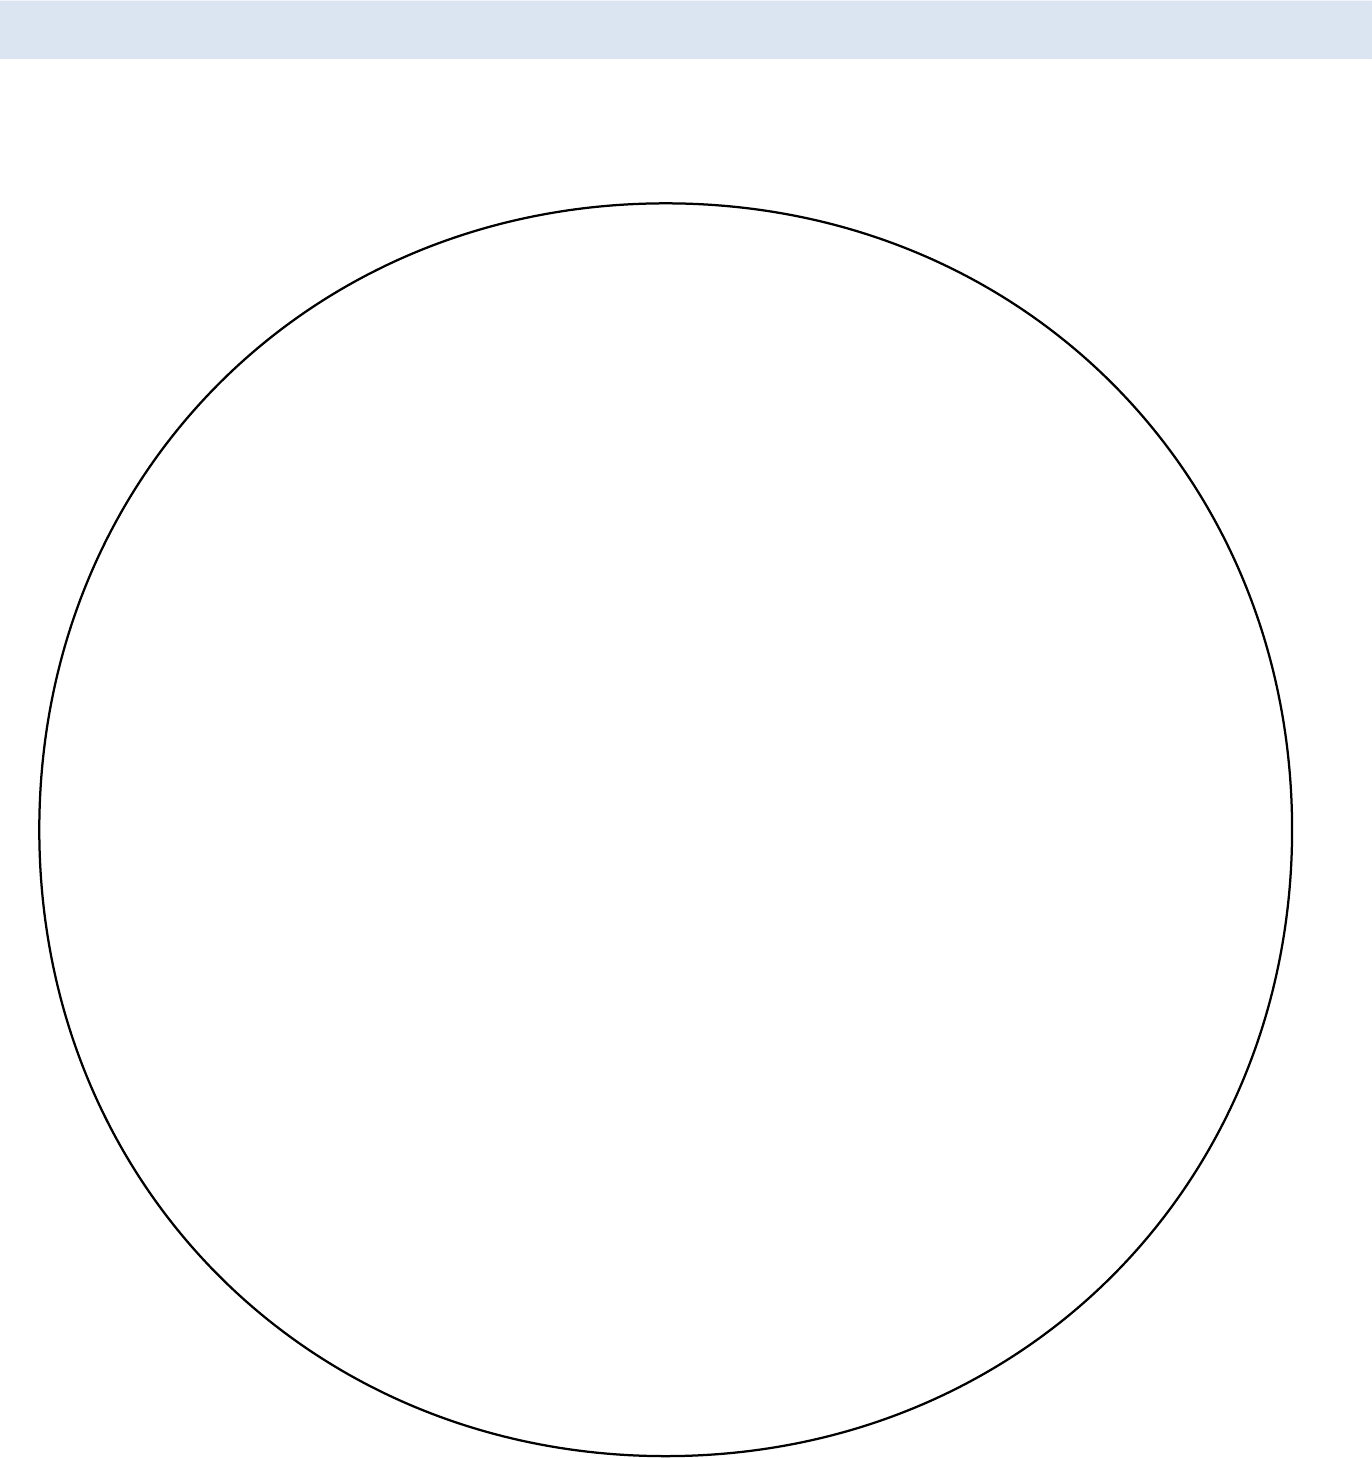 responsibility pie chart template free download. Black Bedroom Furniture Sets. Home Design Ideas